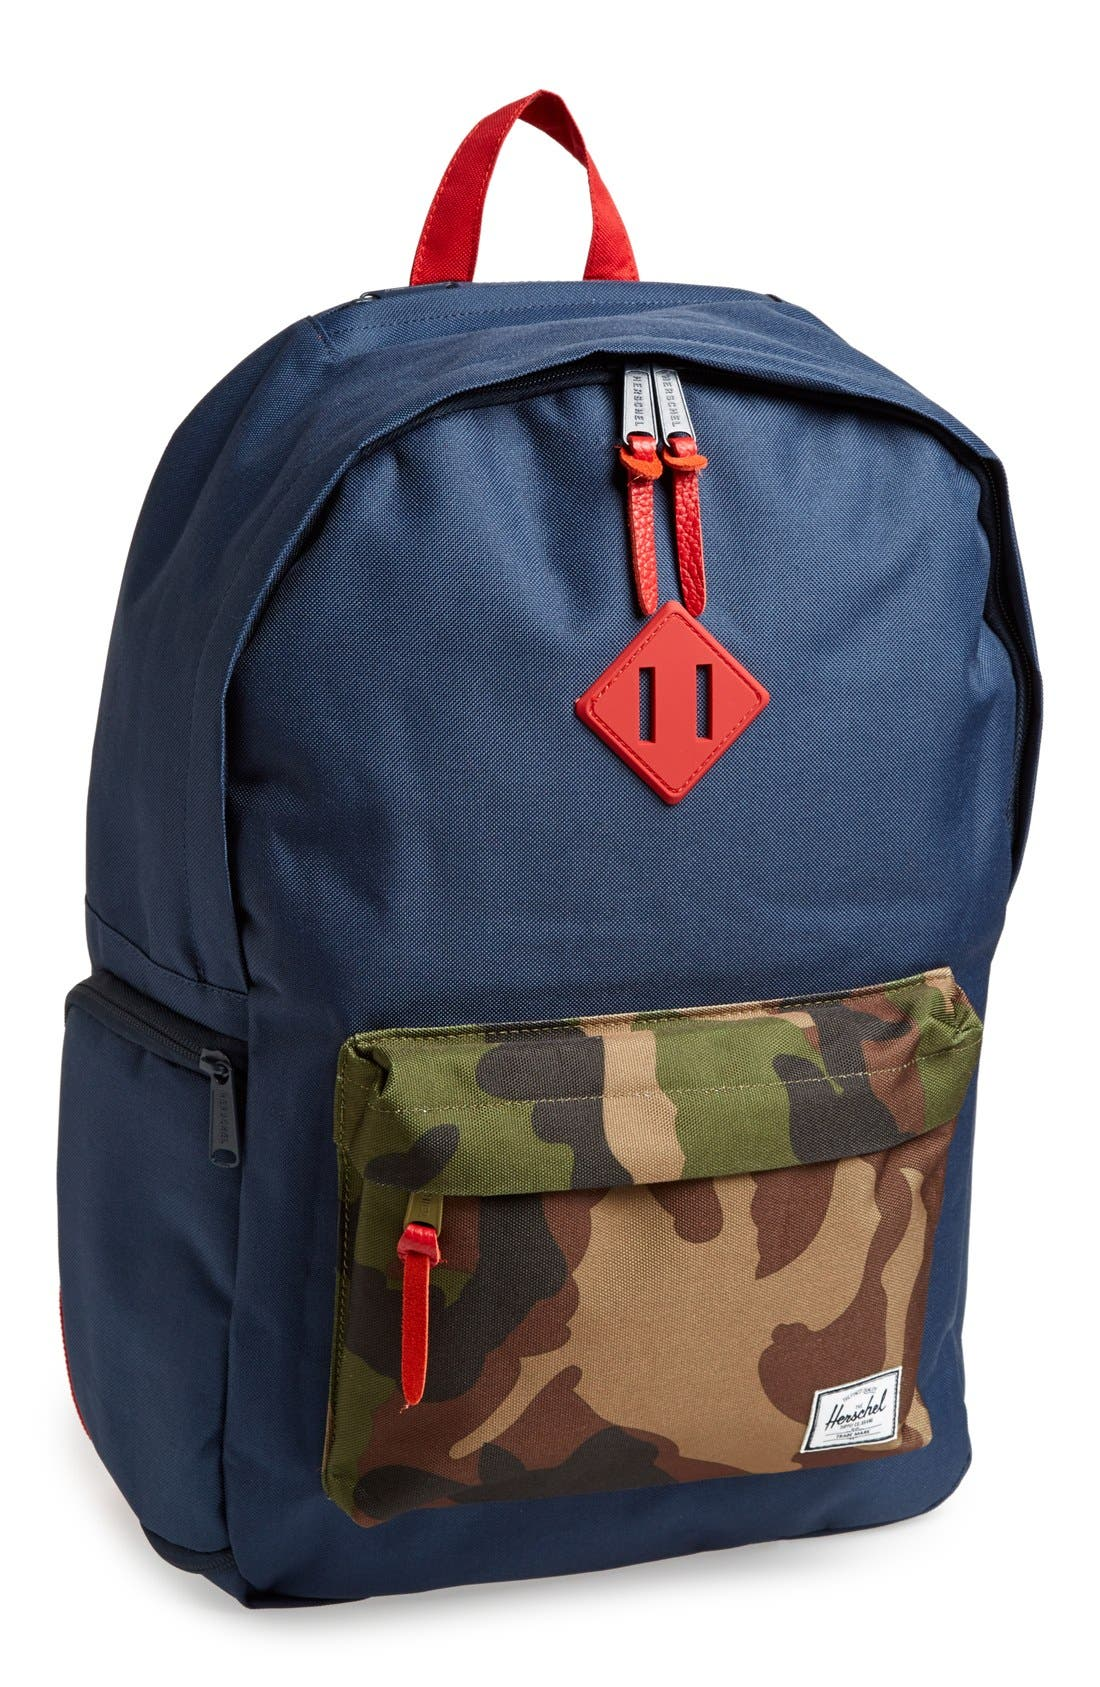 Alternate Image 1 Selected - Herschel Supply Co. 'Heritage Plus' Backpack